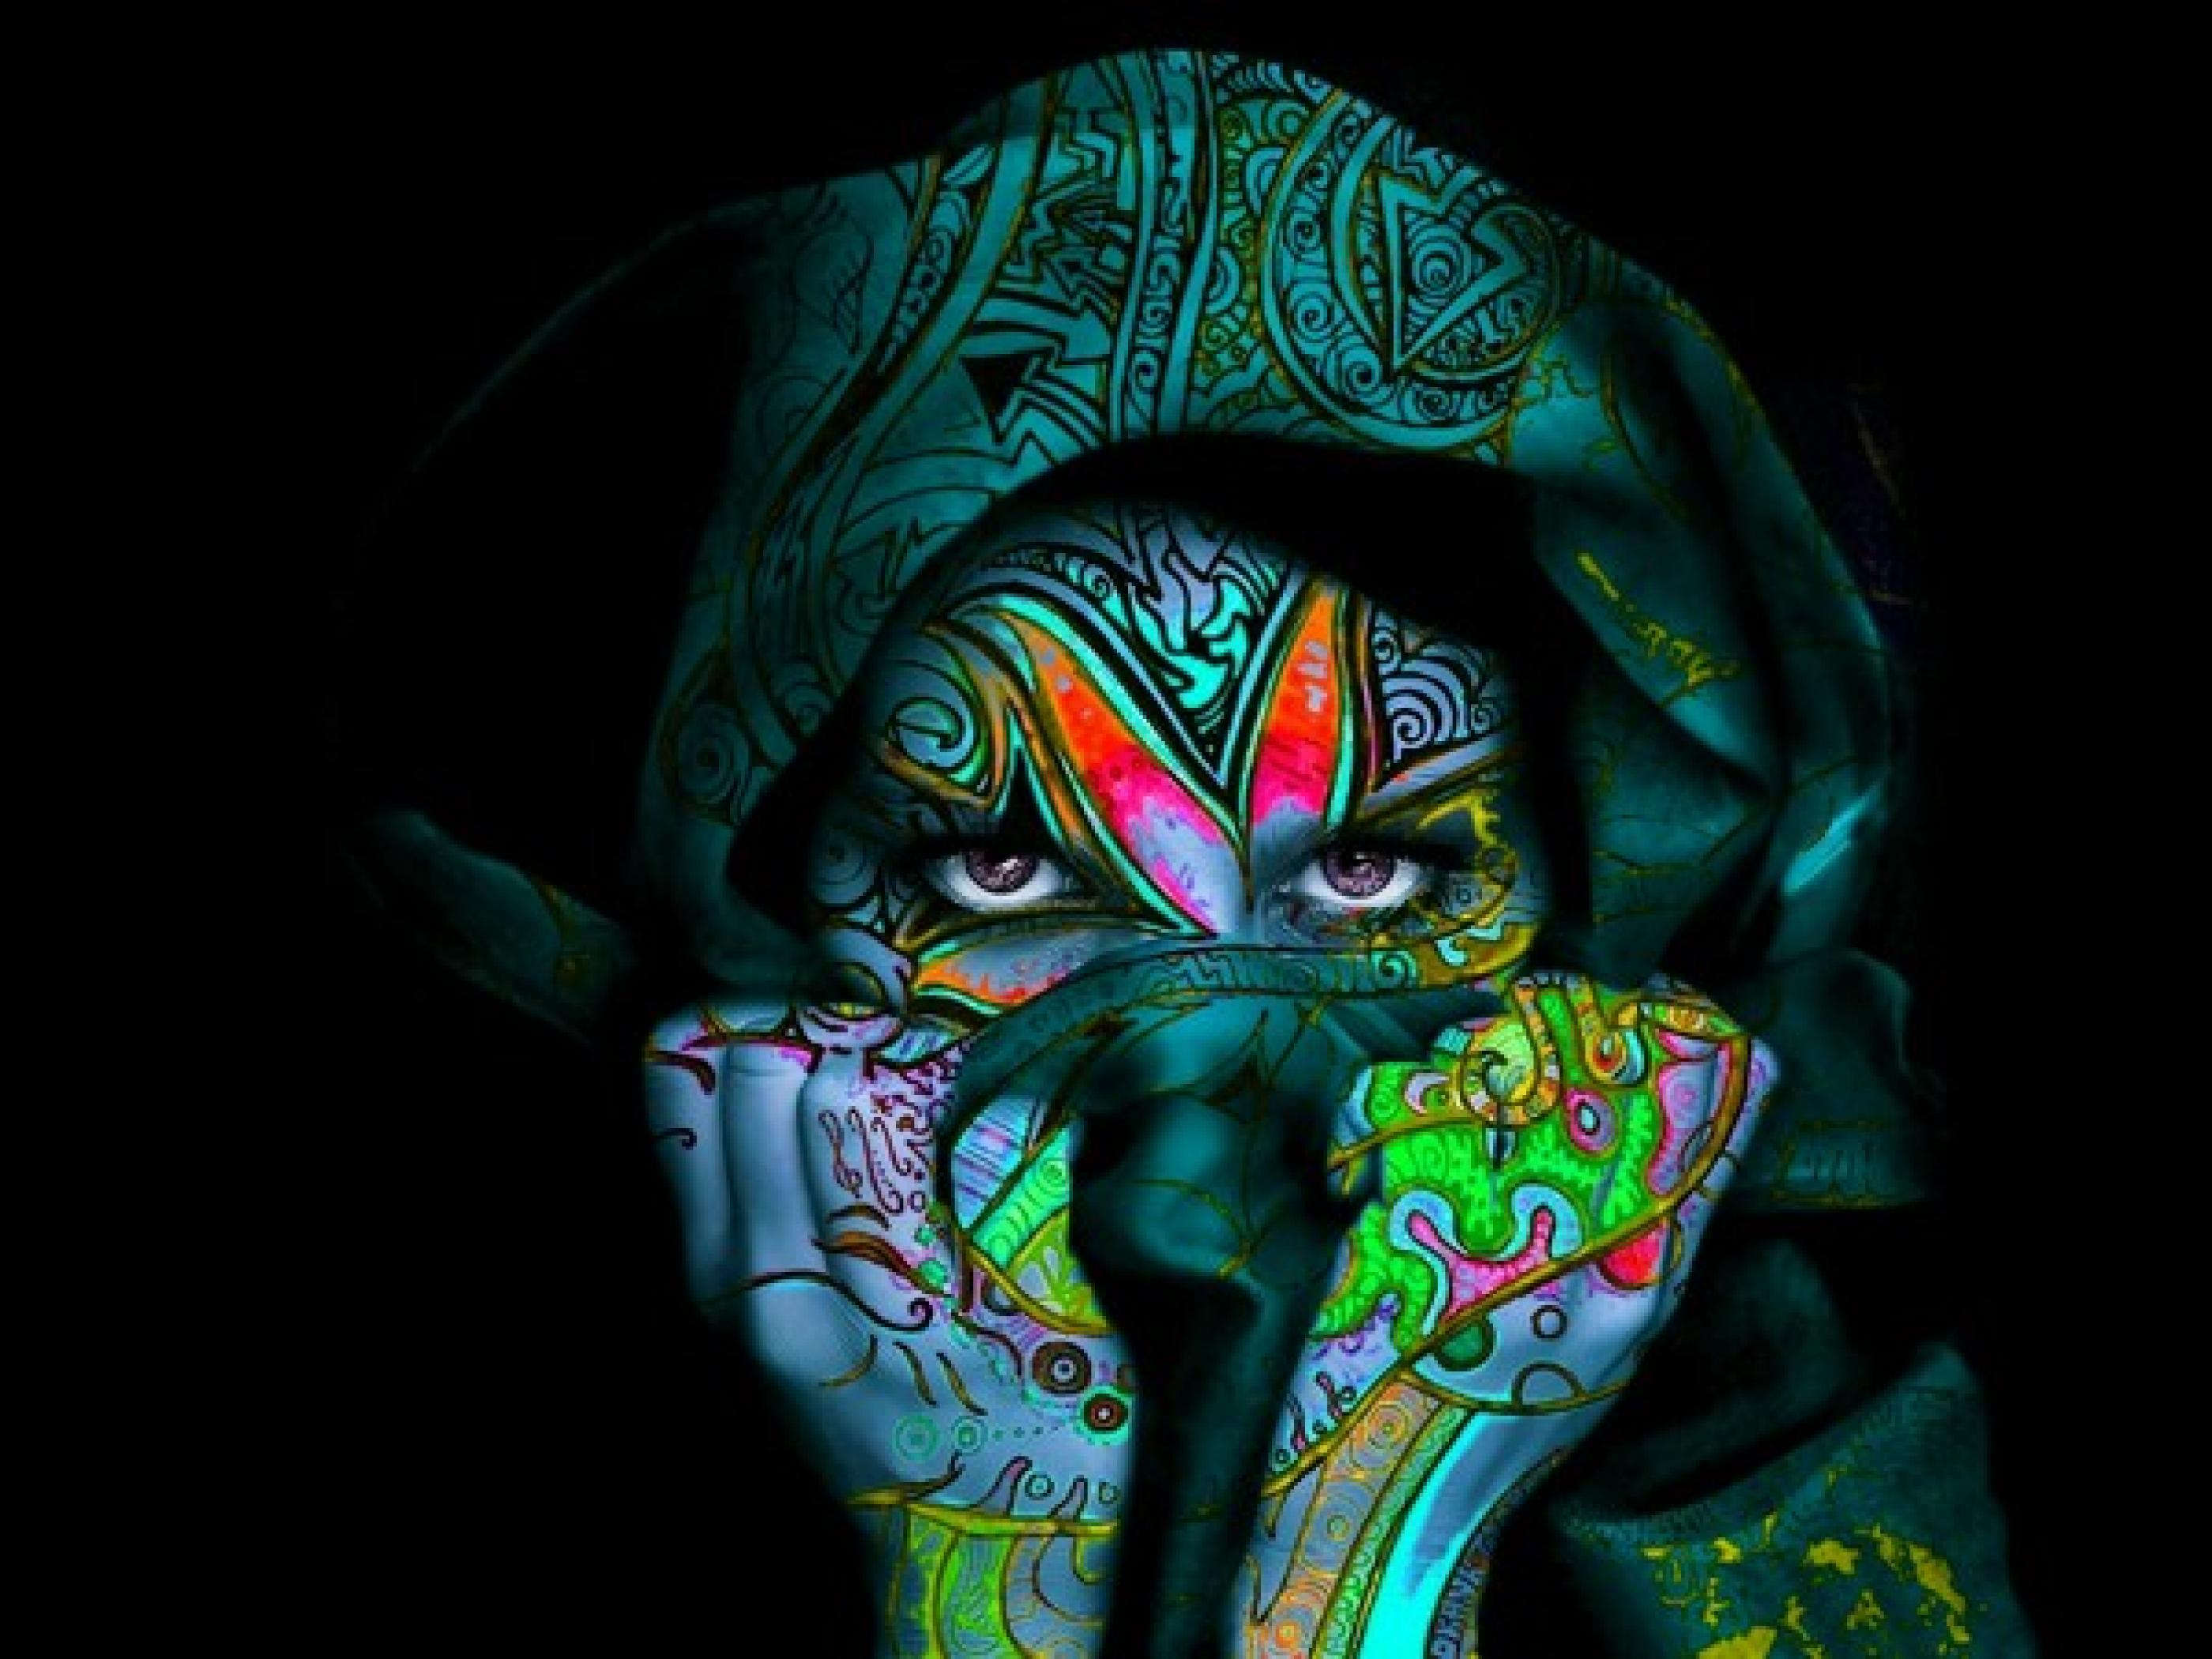 Dope Trippy Illuminati Wallpapers - Top Free Dope Trippy ...